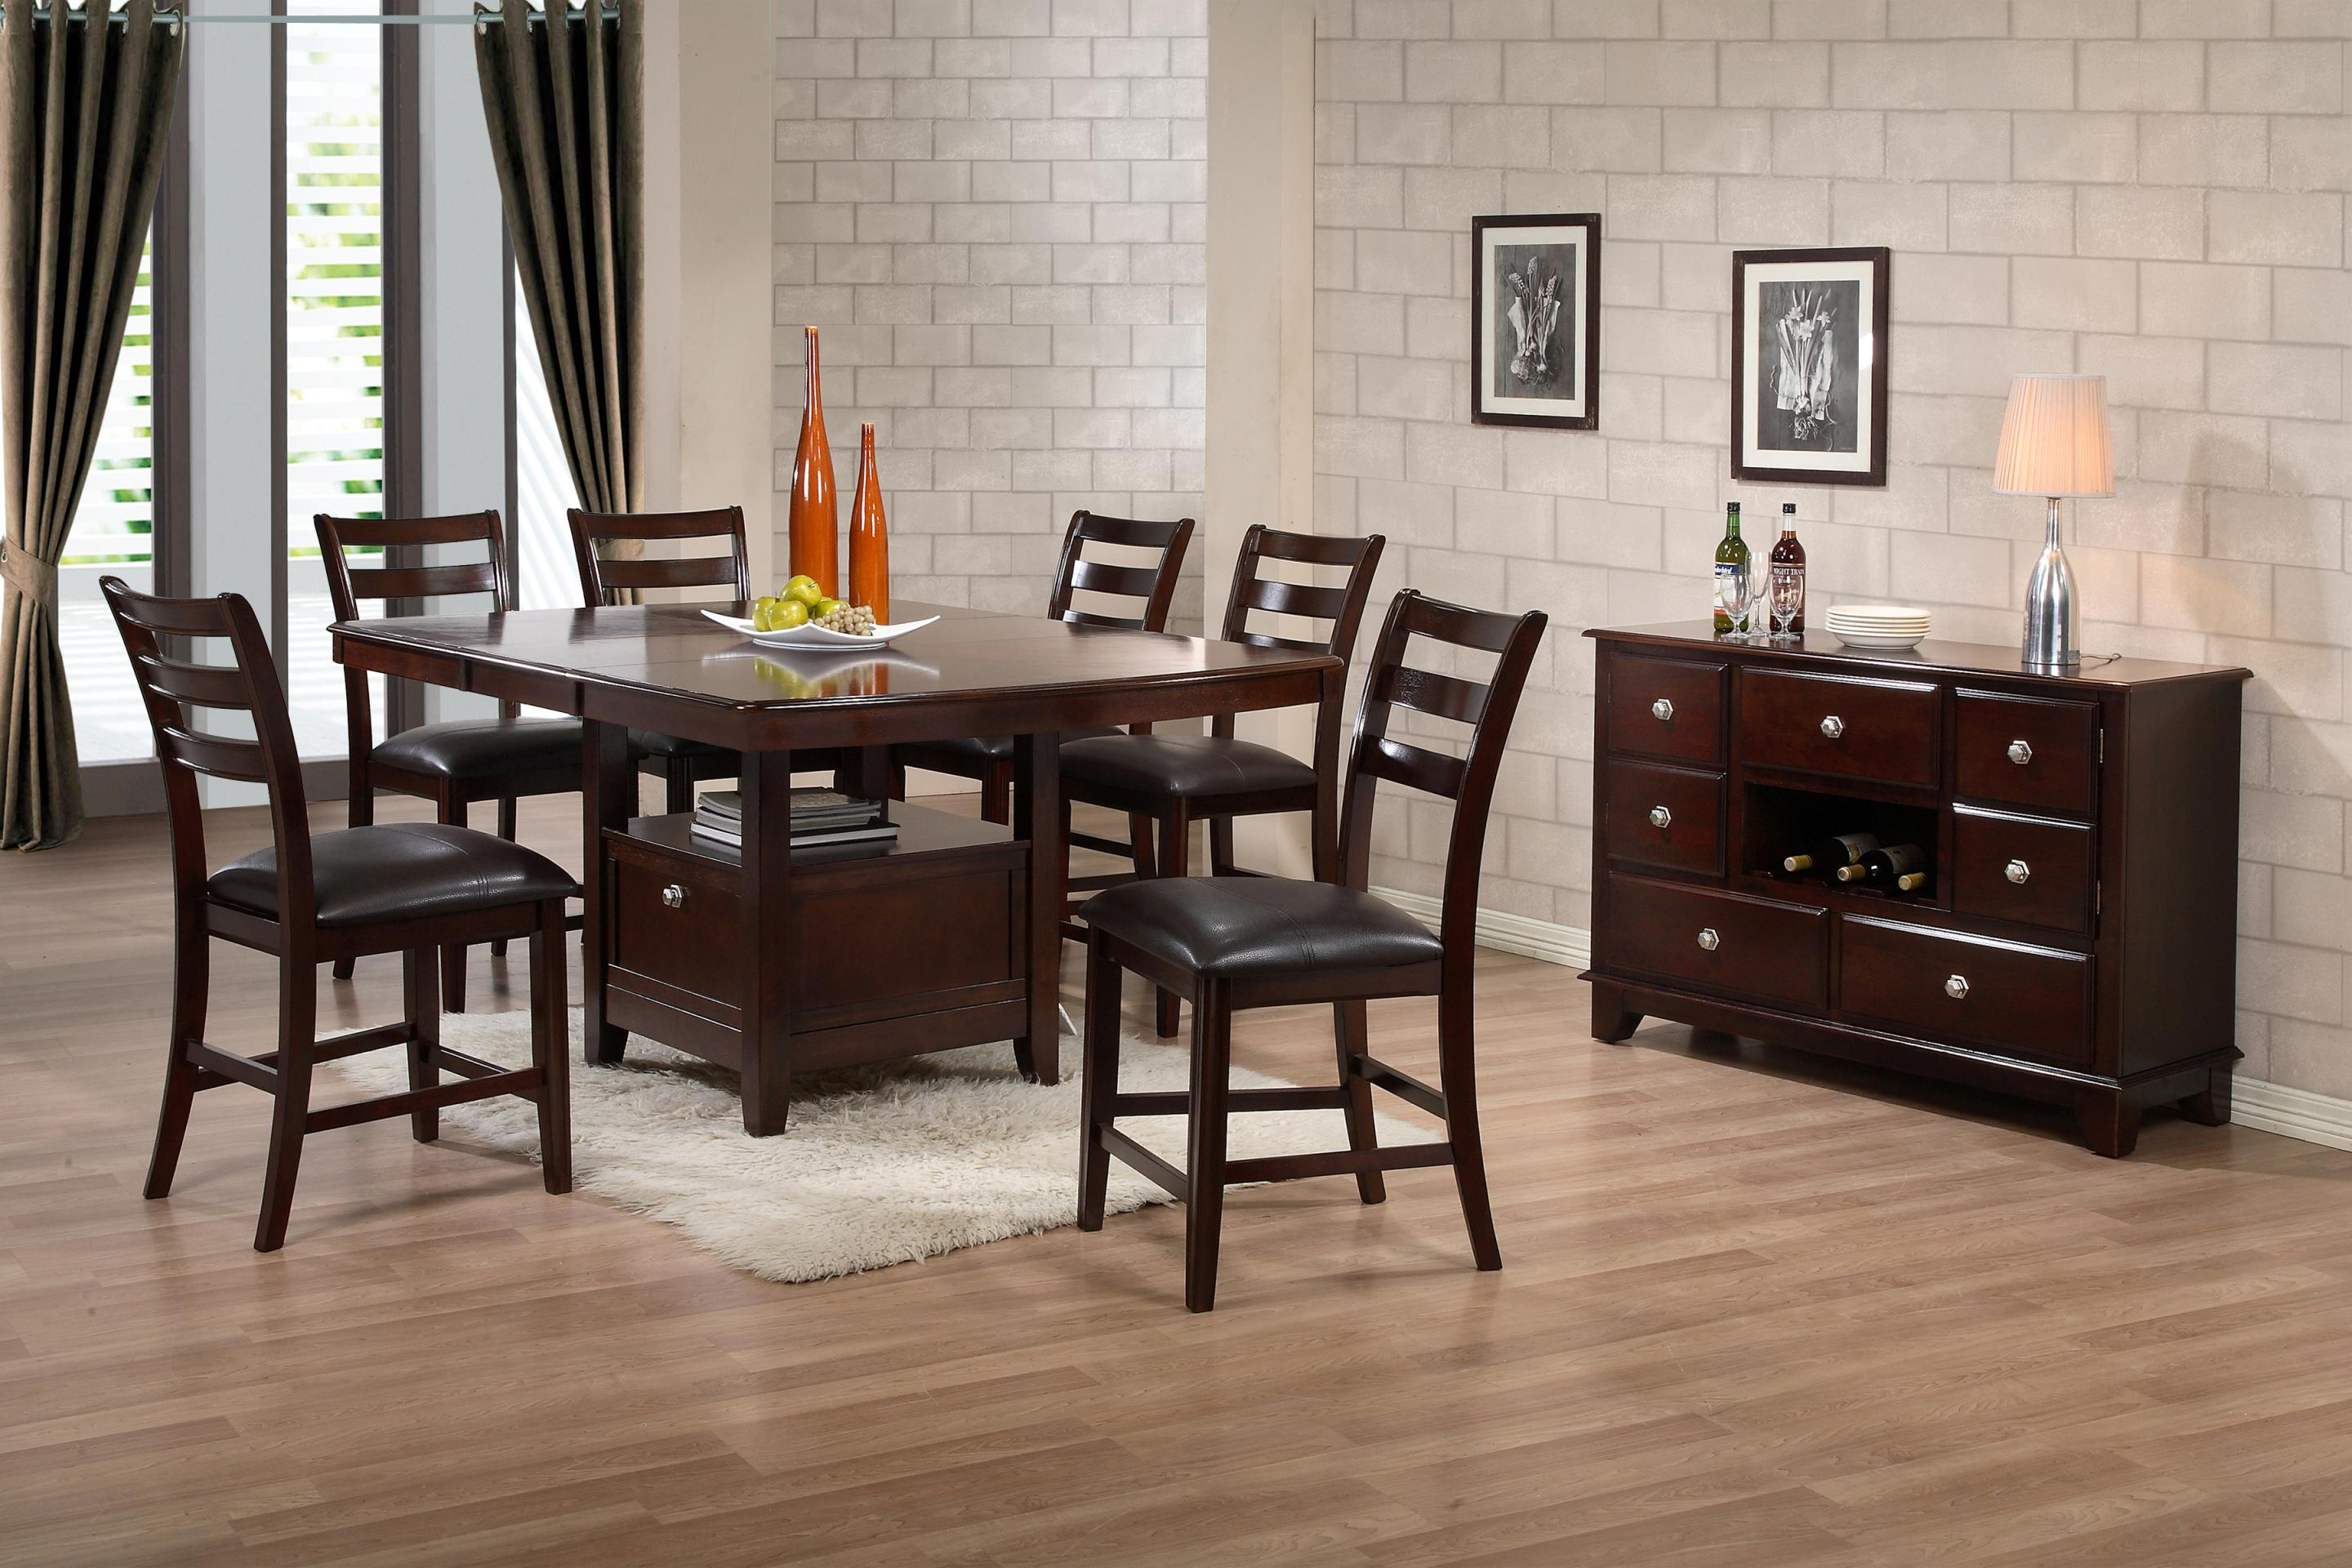 Holland House 1965 Dining Contemporary Pub Chair with UltraHyde Upholstery - Royal Furniture ...